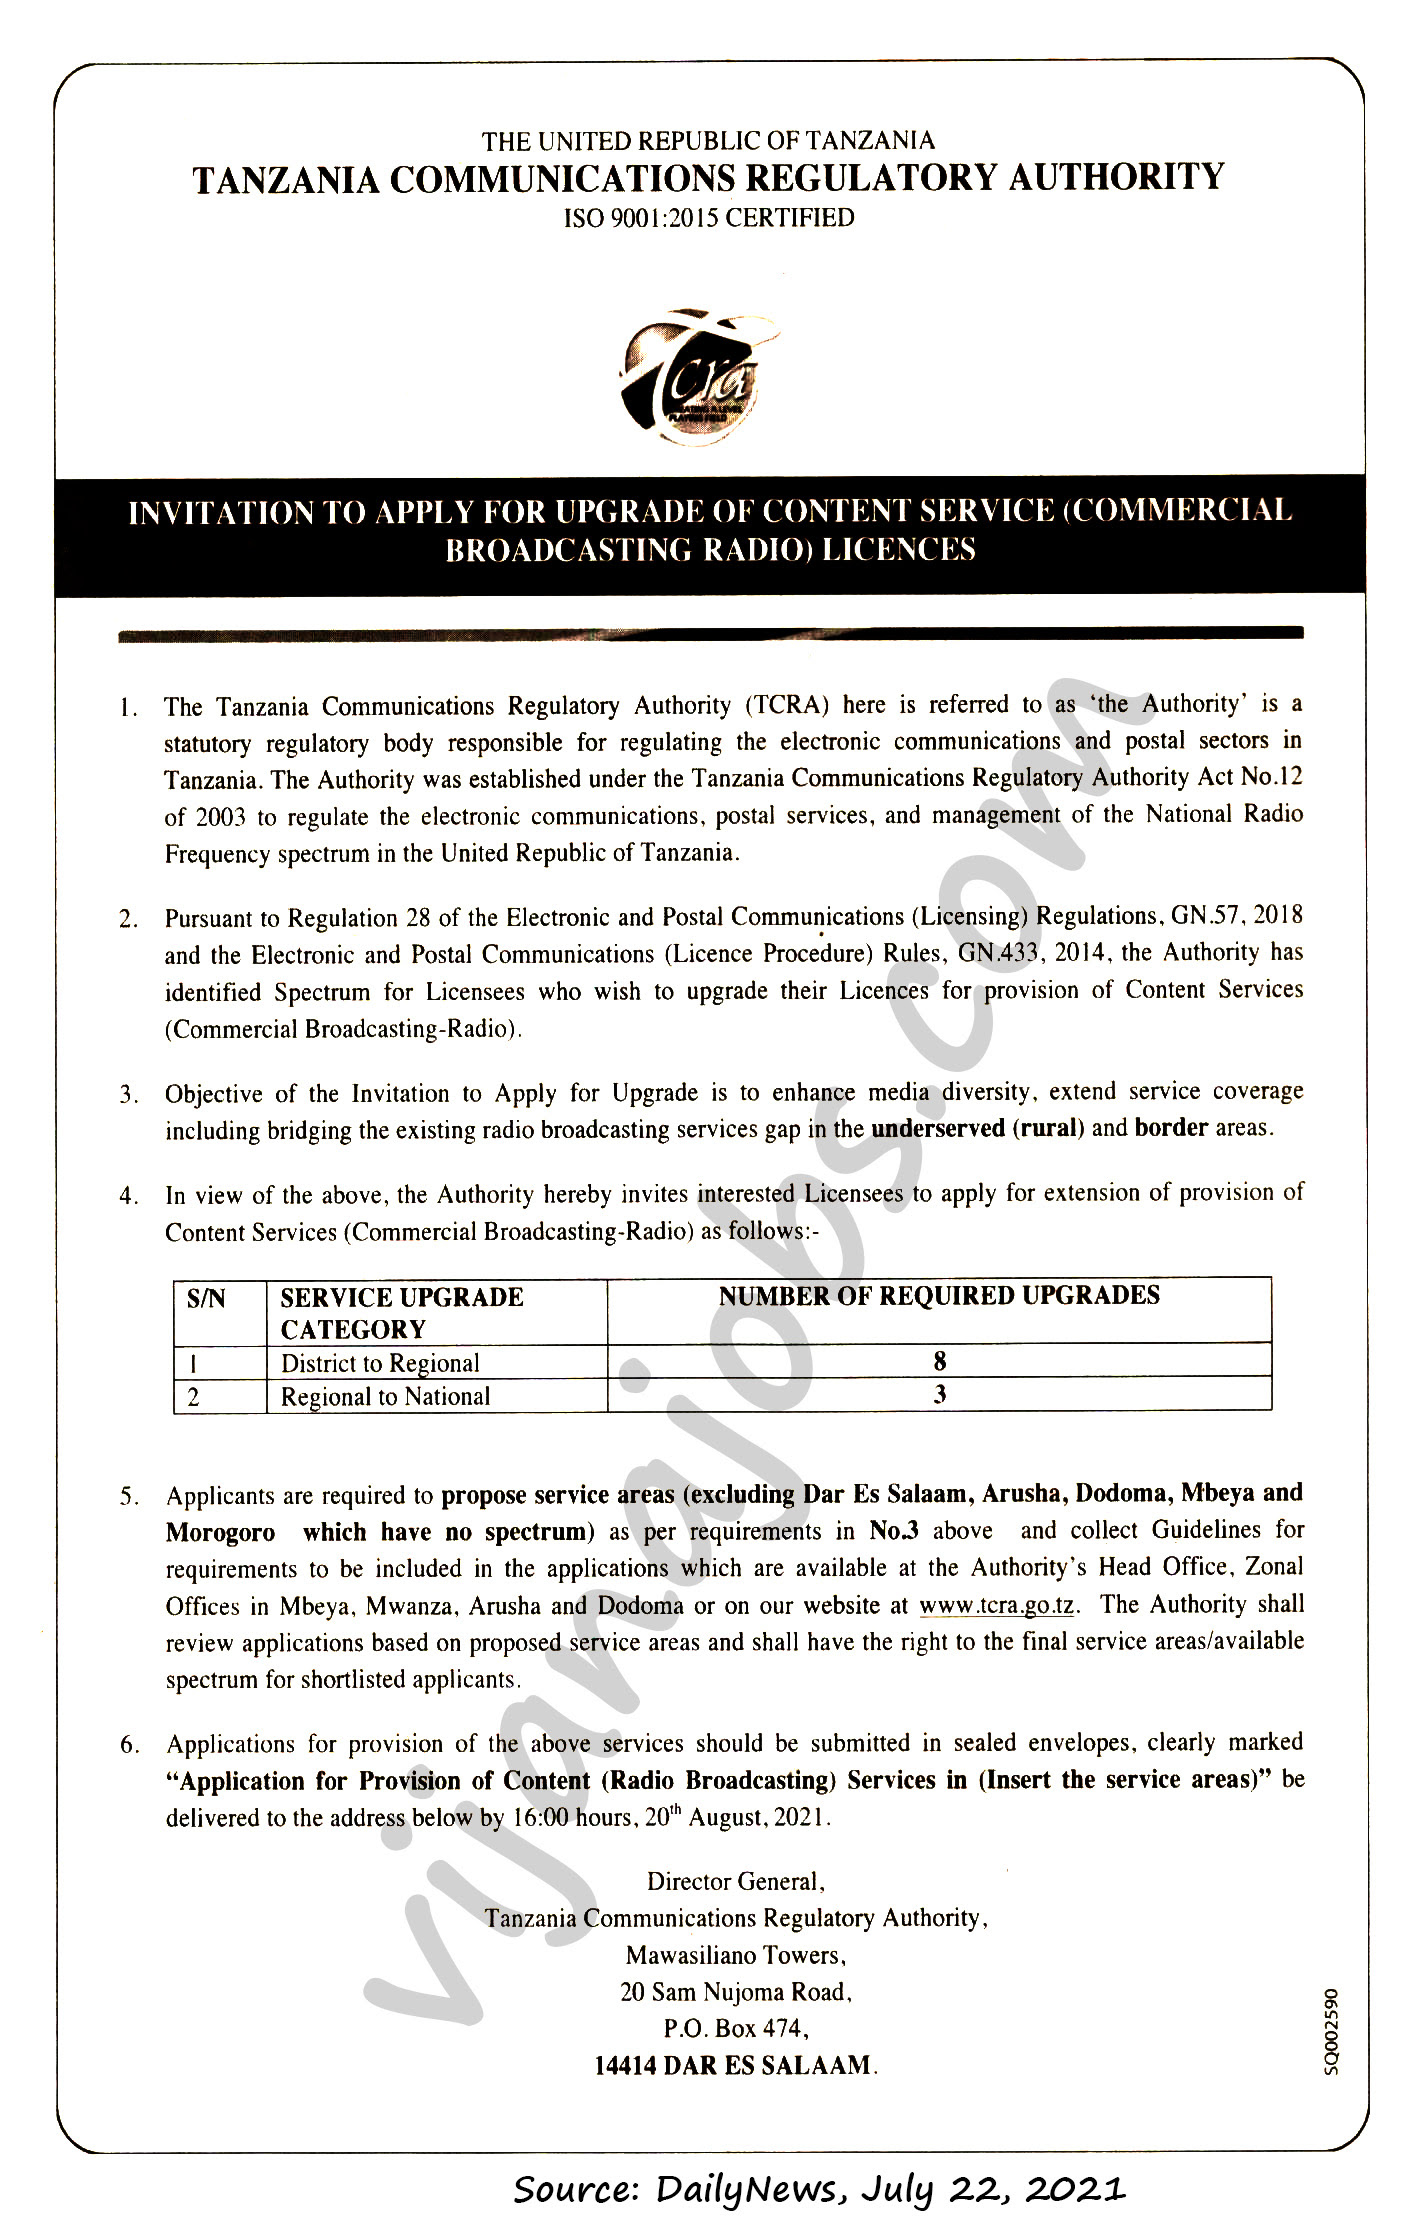 Provision of content service (Commercial Broadcasting Radio) licences